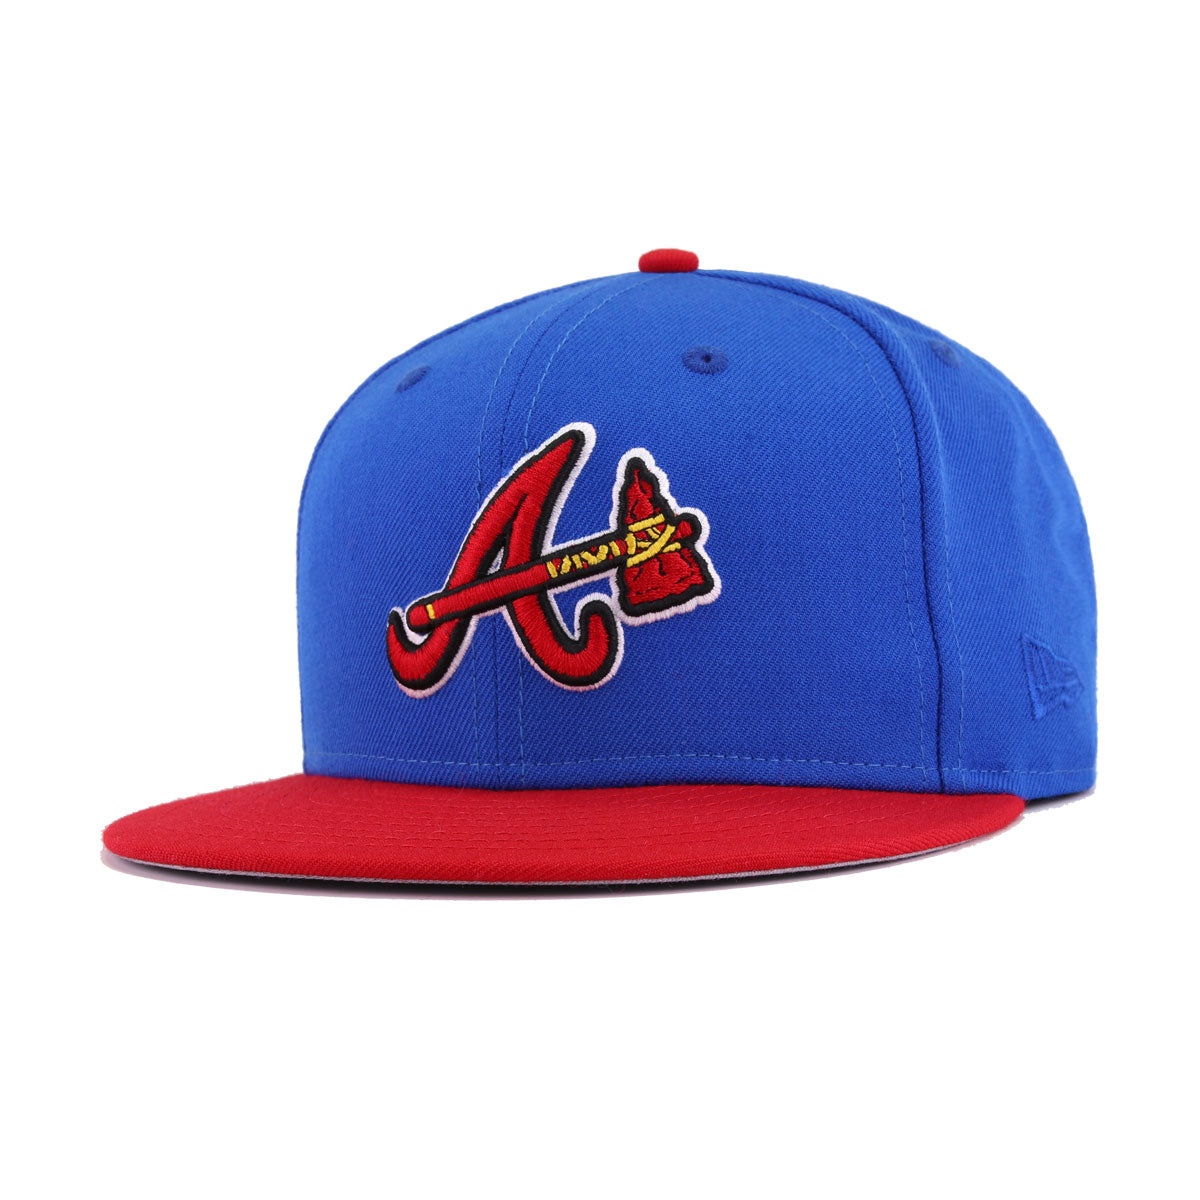 official photos c8de1 71b9d Atlanta Braves Blue Azure Scarlet New Era 9Fifty Snapback